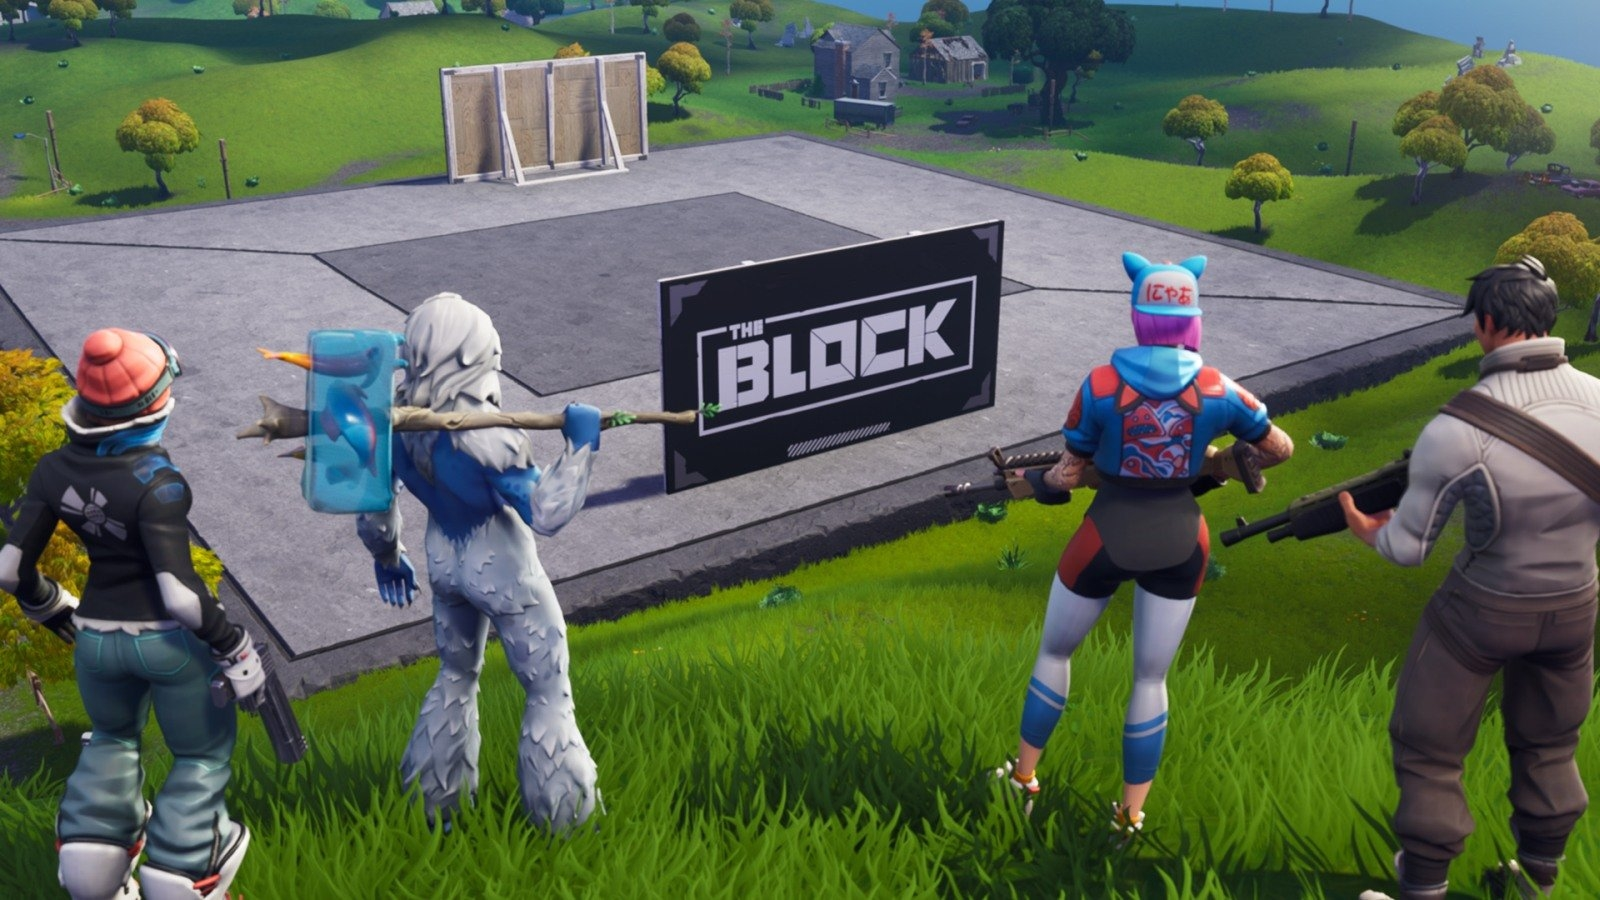 'Fortnite' launched 'The Block' live in-game during The Game Awards | DeviceDaily.com